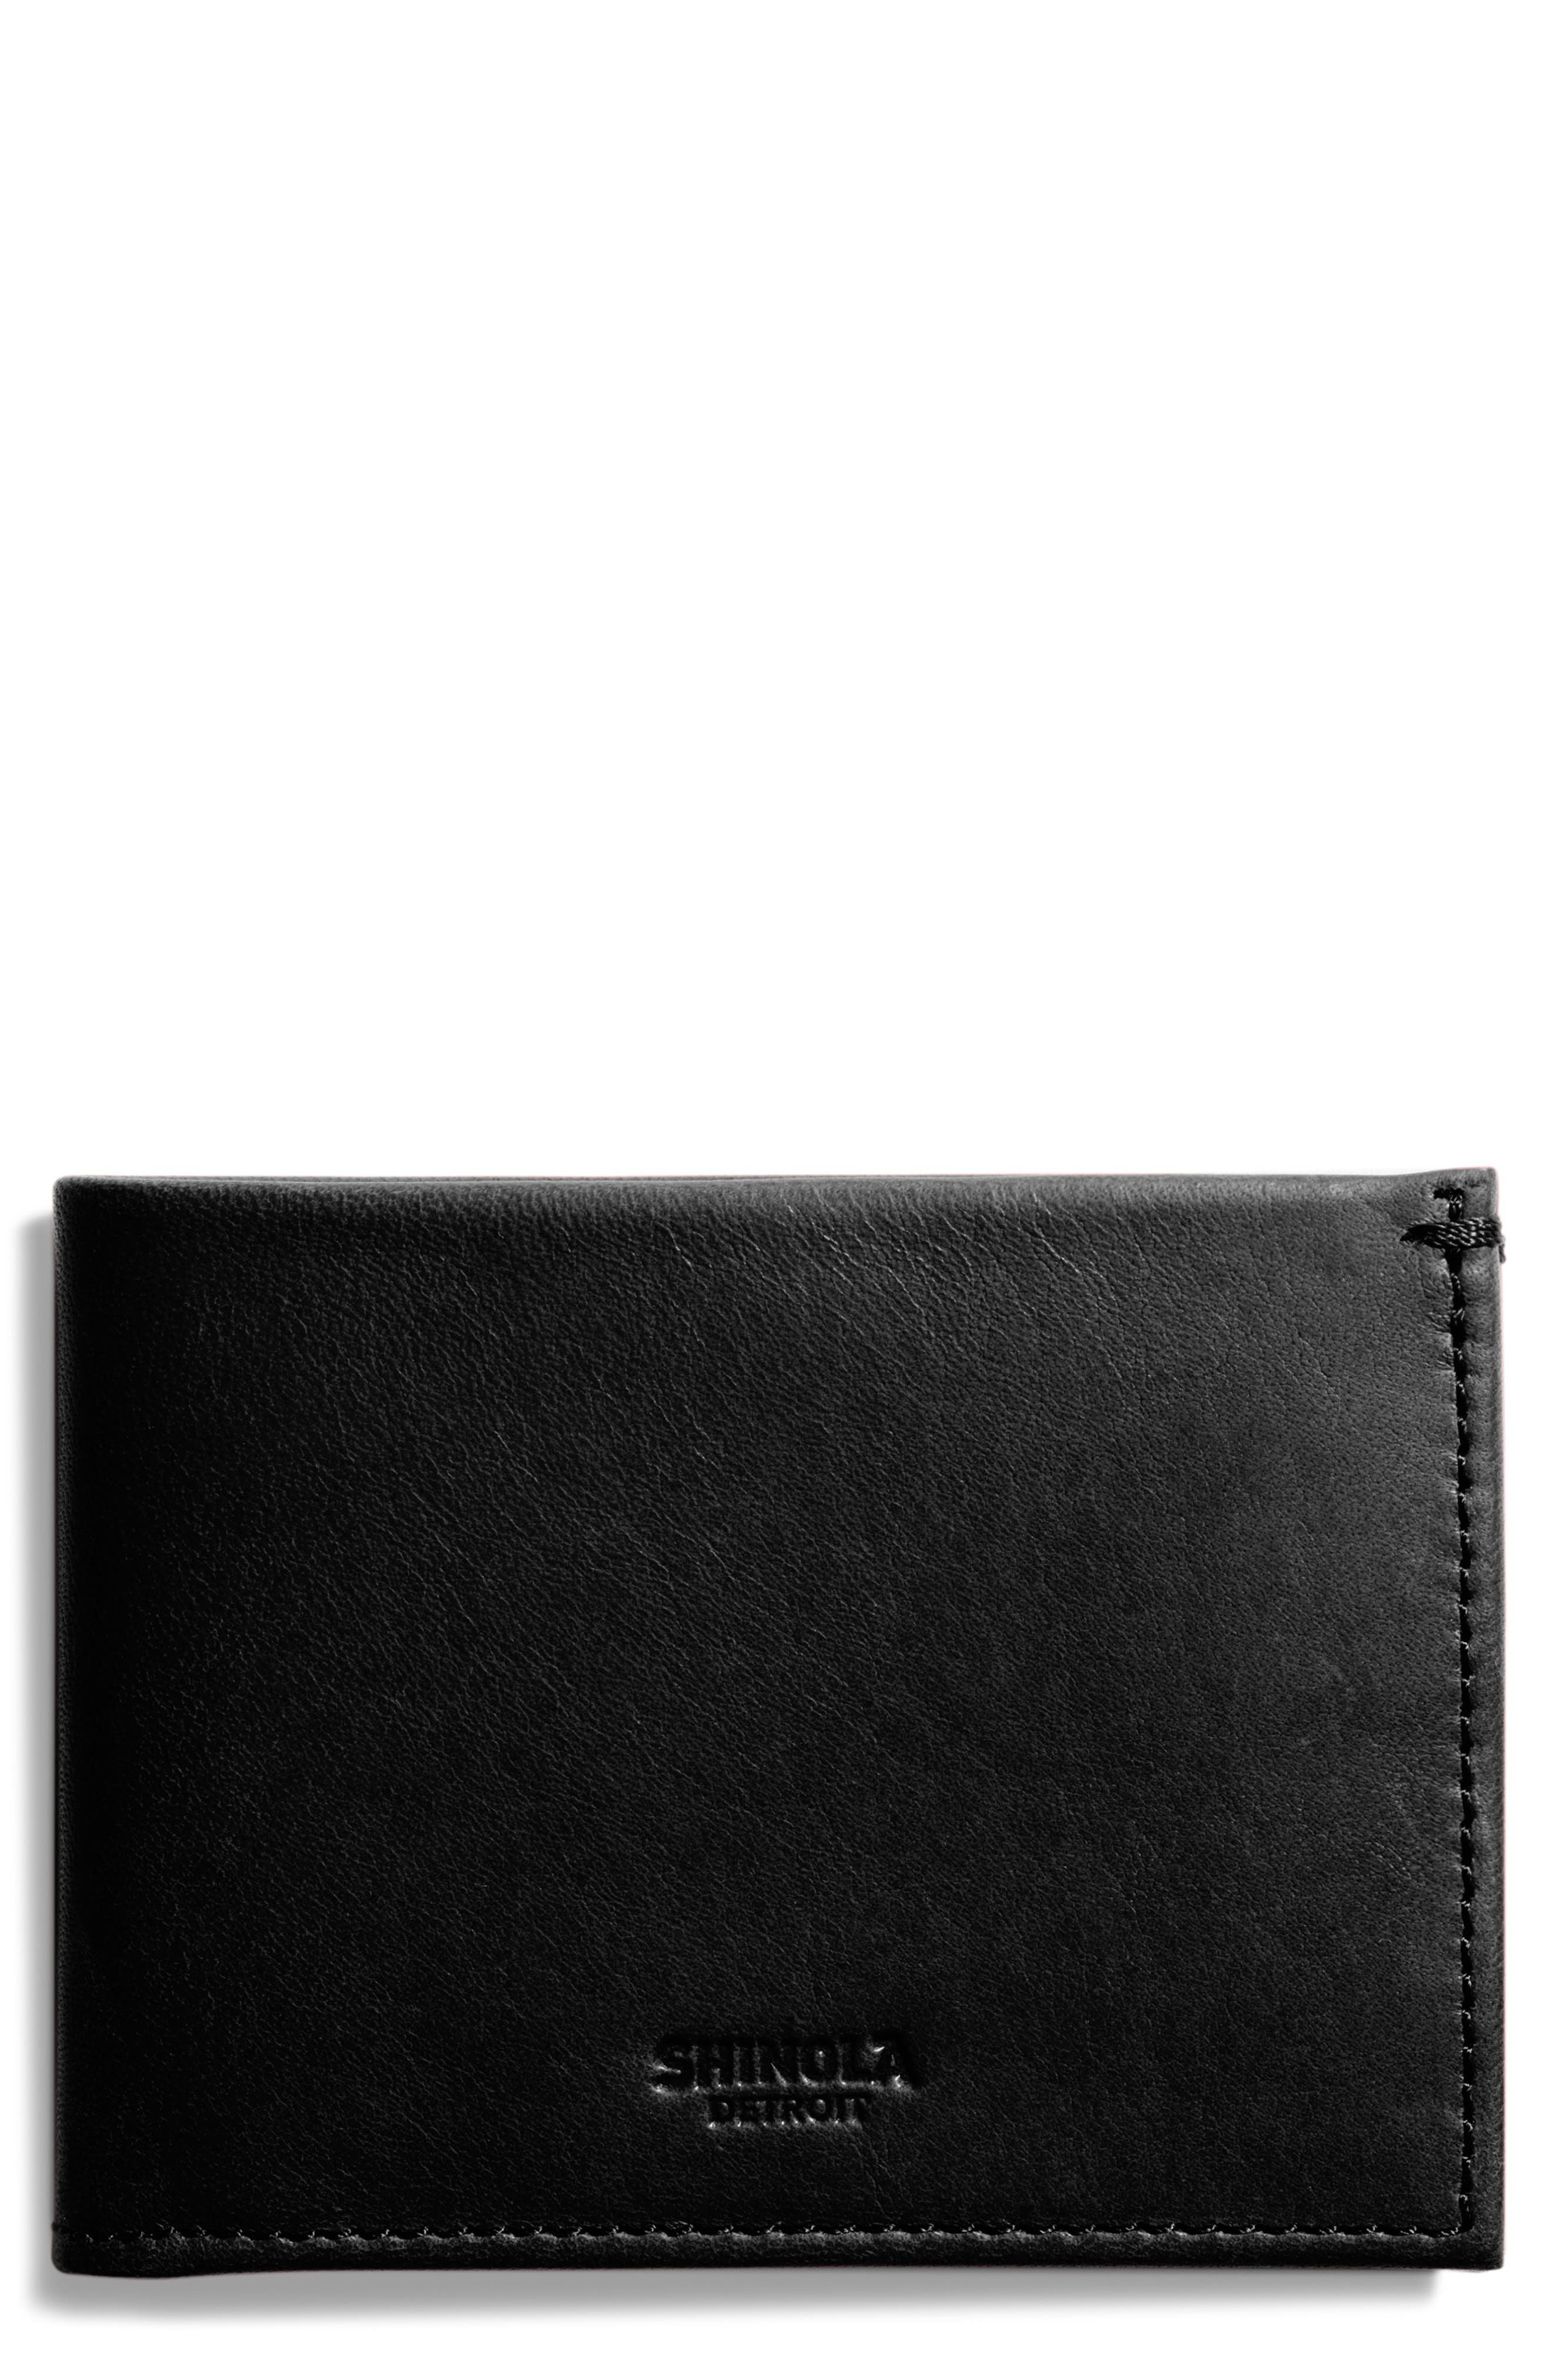 SHINOLA Slim Bifold Leather Wallet, Main, color, BLACK